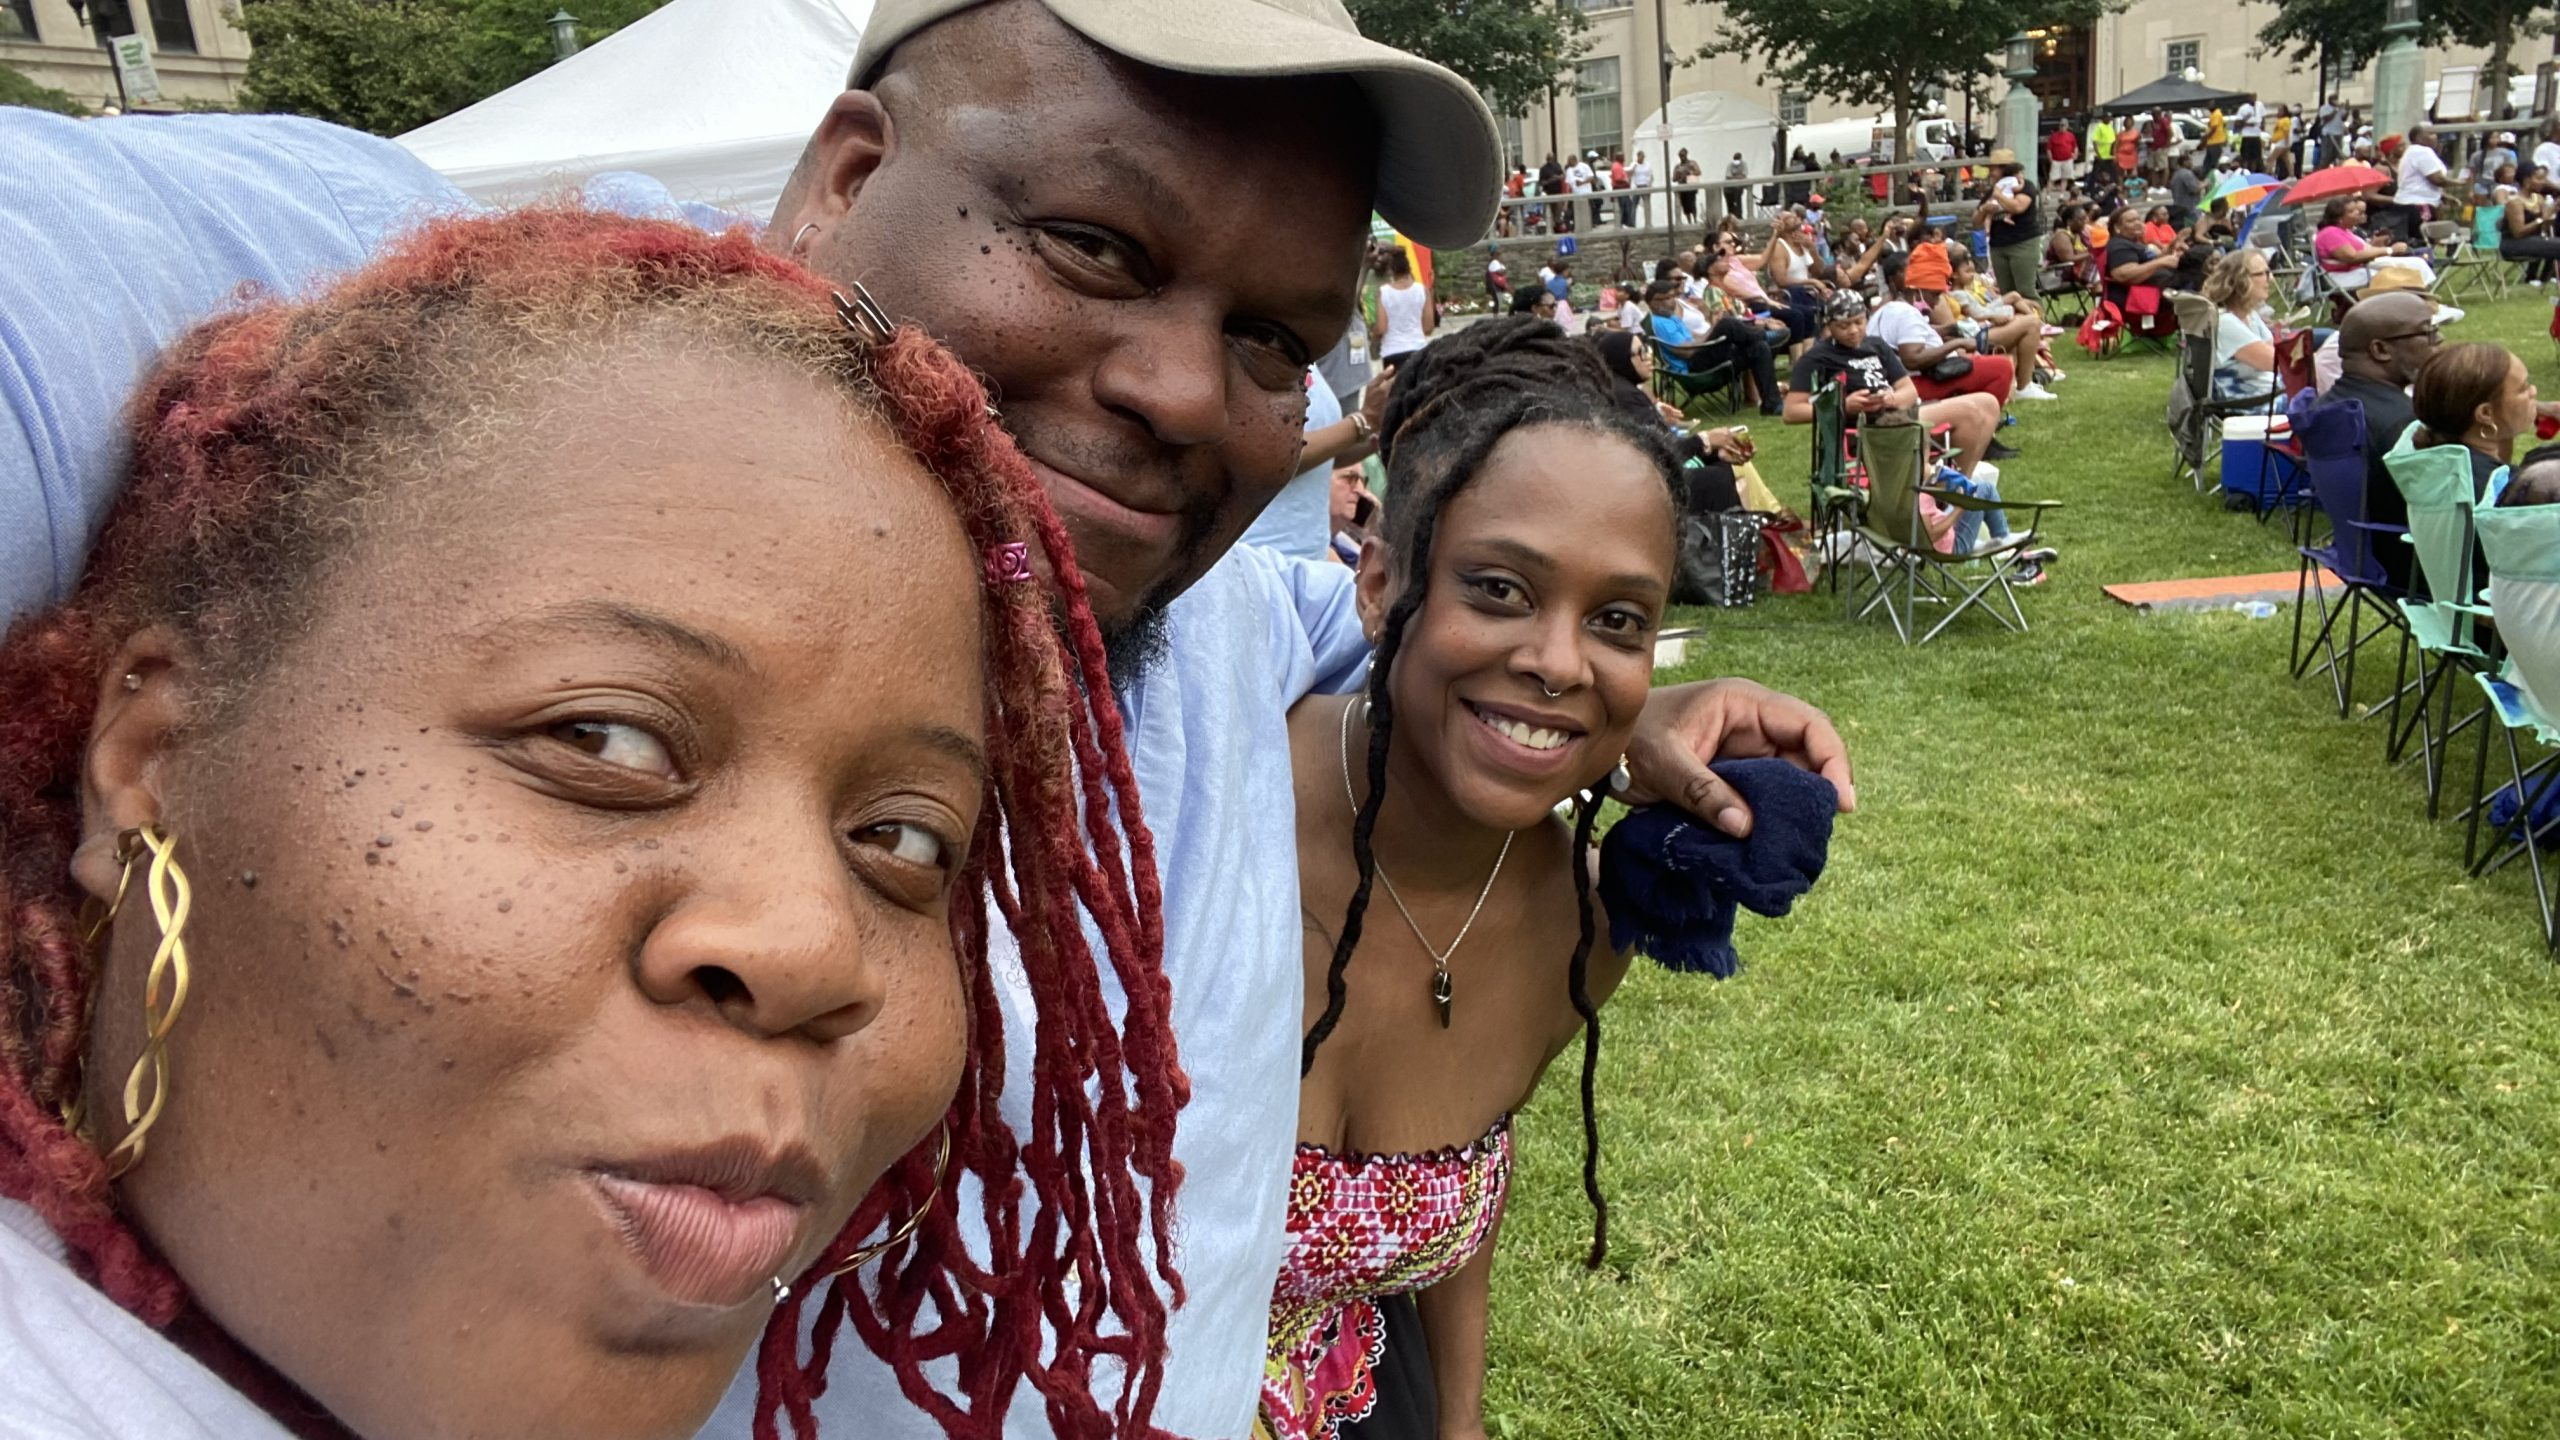 The squad at the 1st Annual Juneteenth Festival at Rodney Square